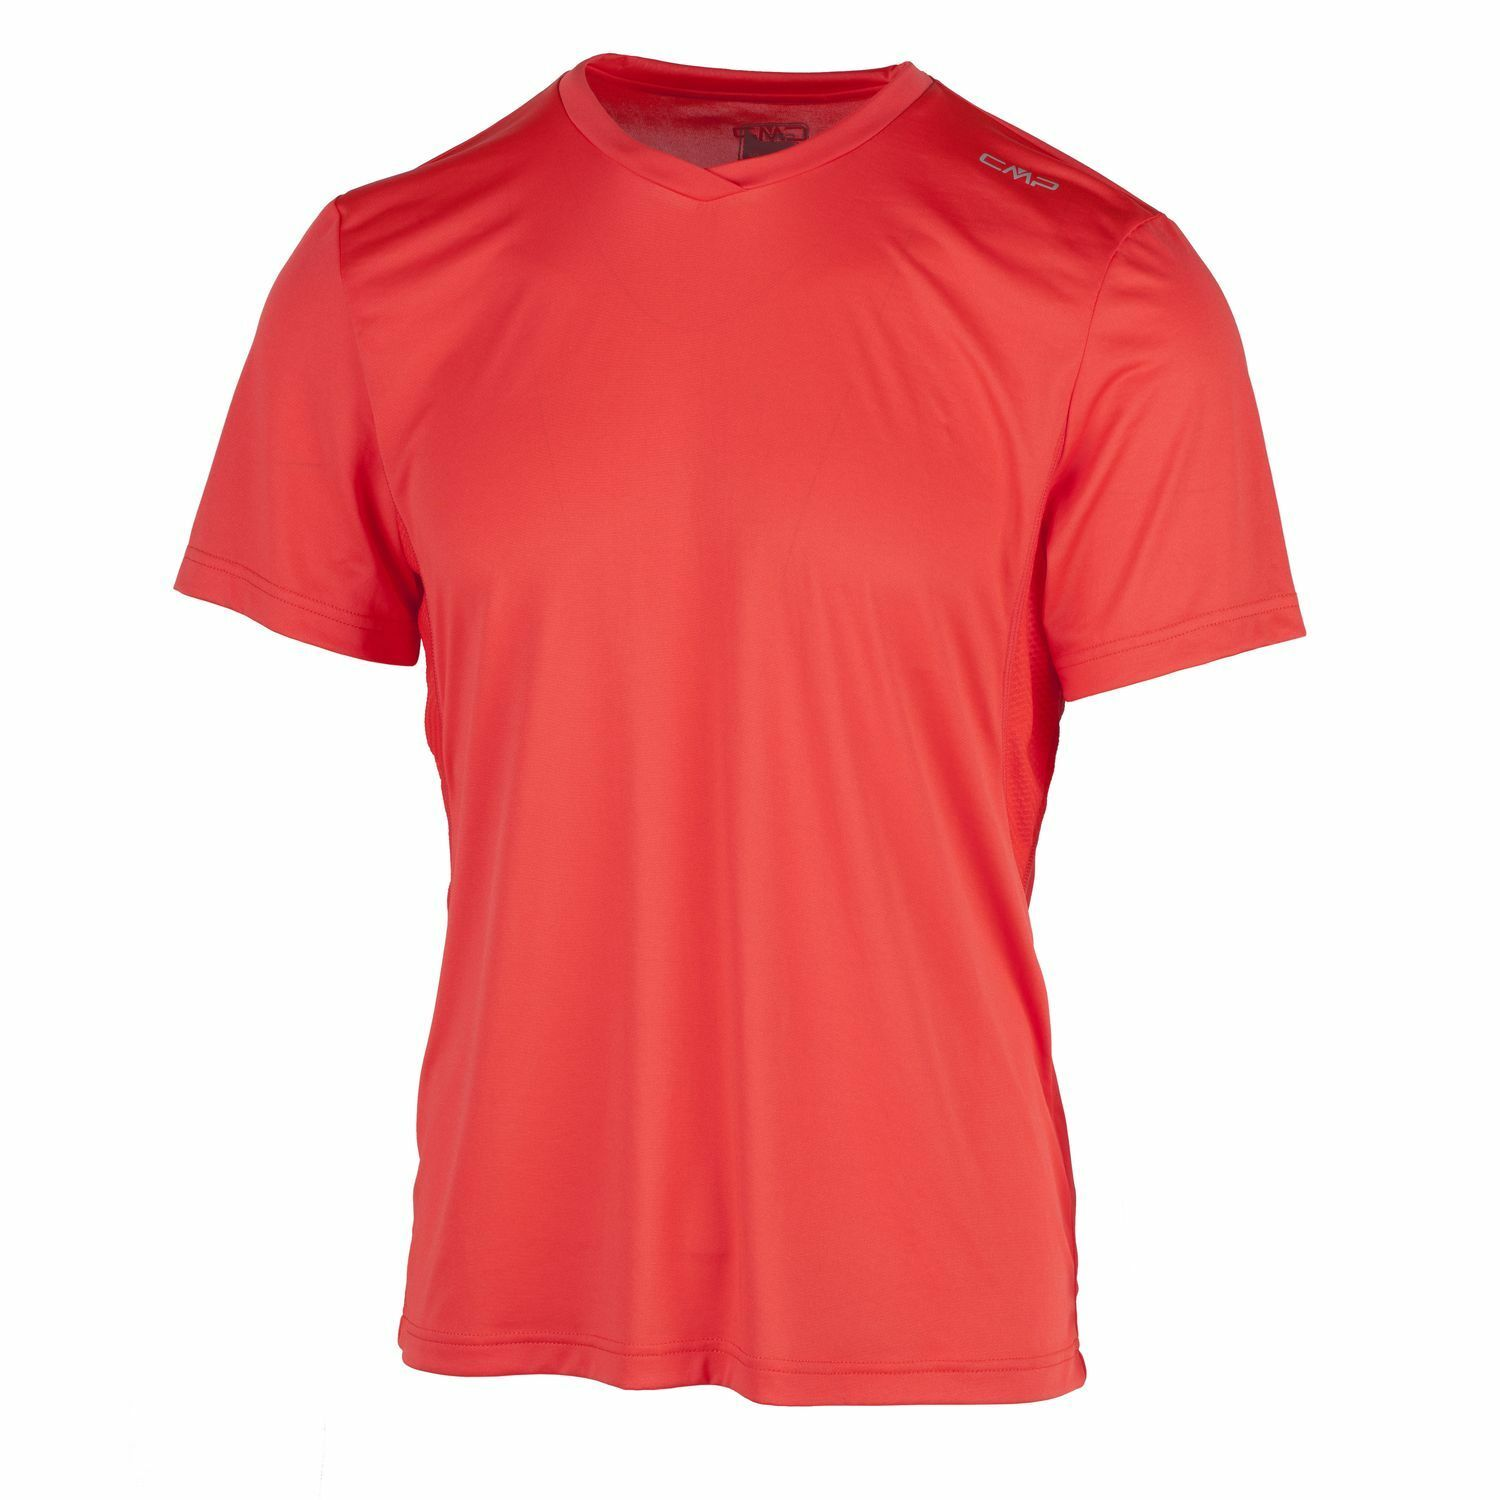 CMP running shirt  Function Top T-Shirt orange dryfunction MOD TRENDY  factory direct sales